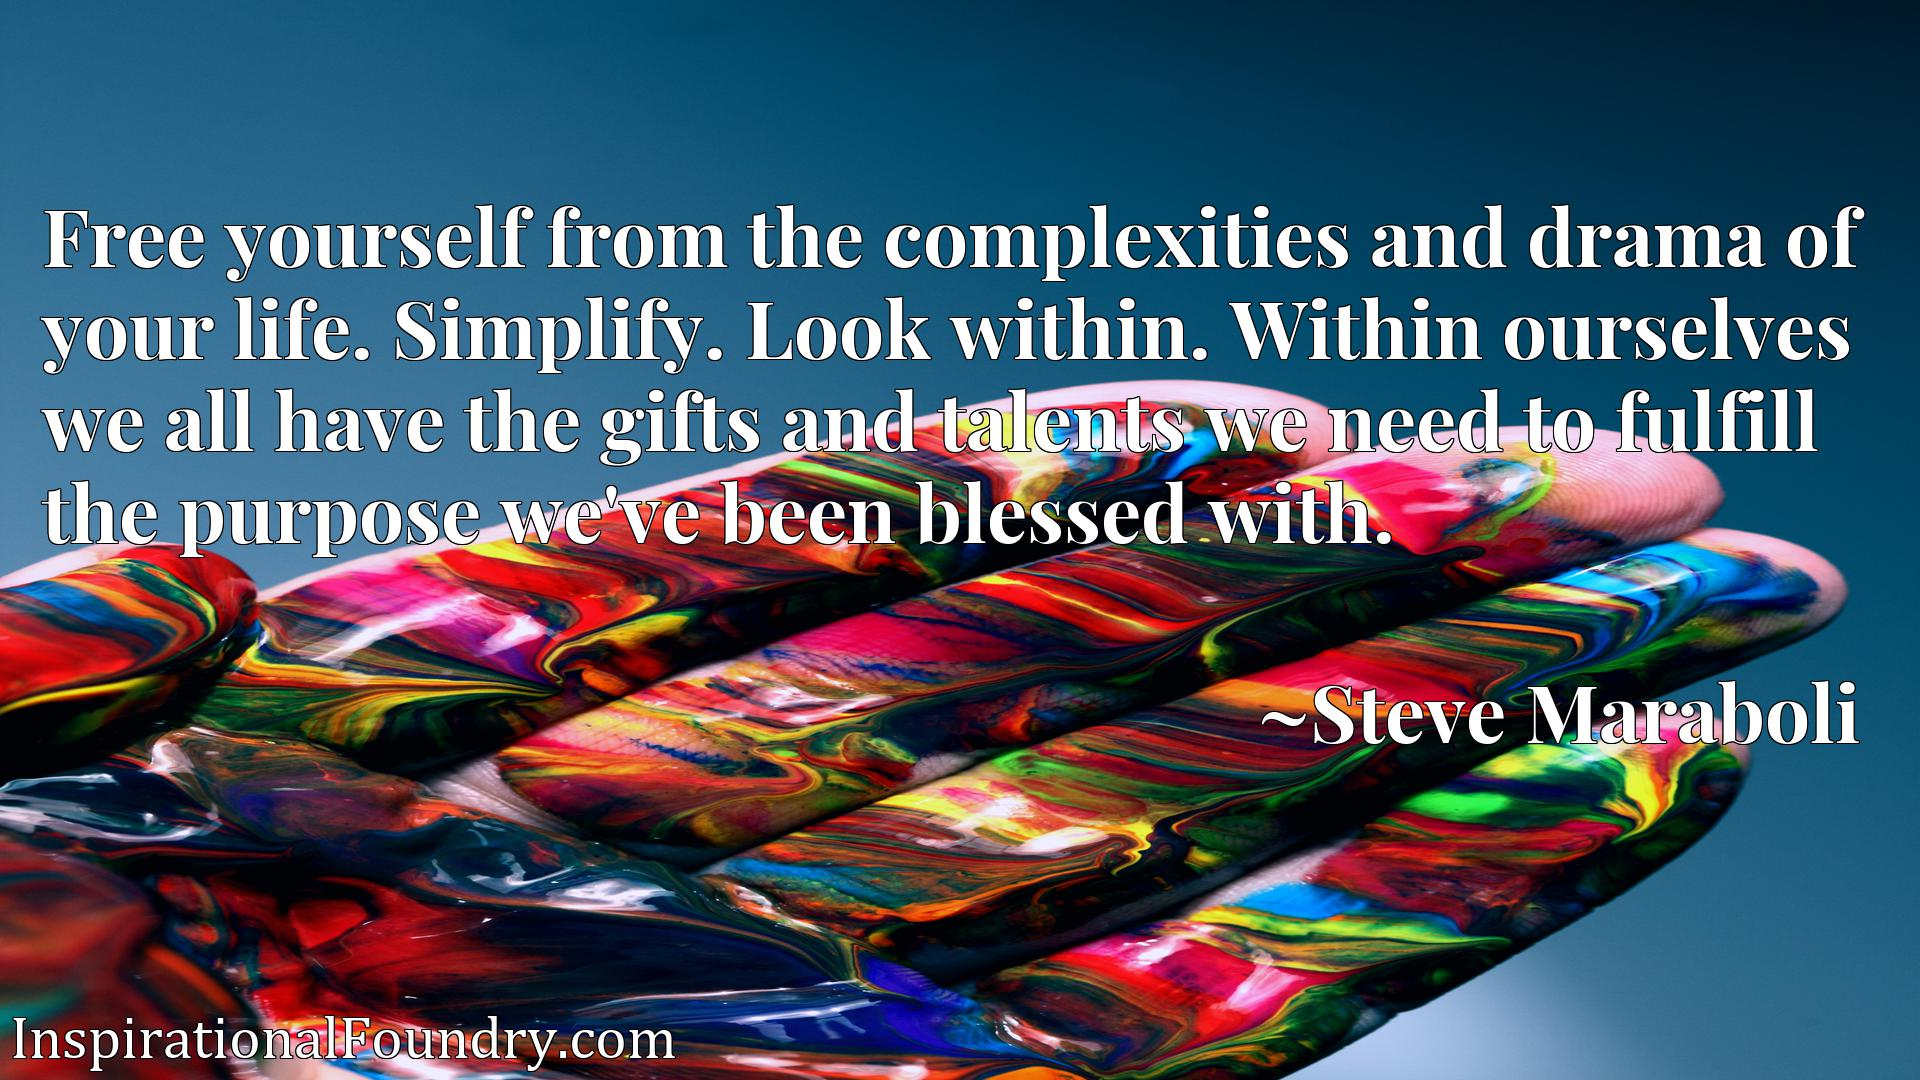 Free yourself from the complexities and drama of your life. Simplify. Look within. Within ourselves we all have the gifts and talents we need to fulfill the purpose we've been blessed with.